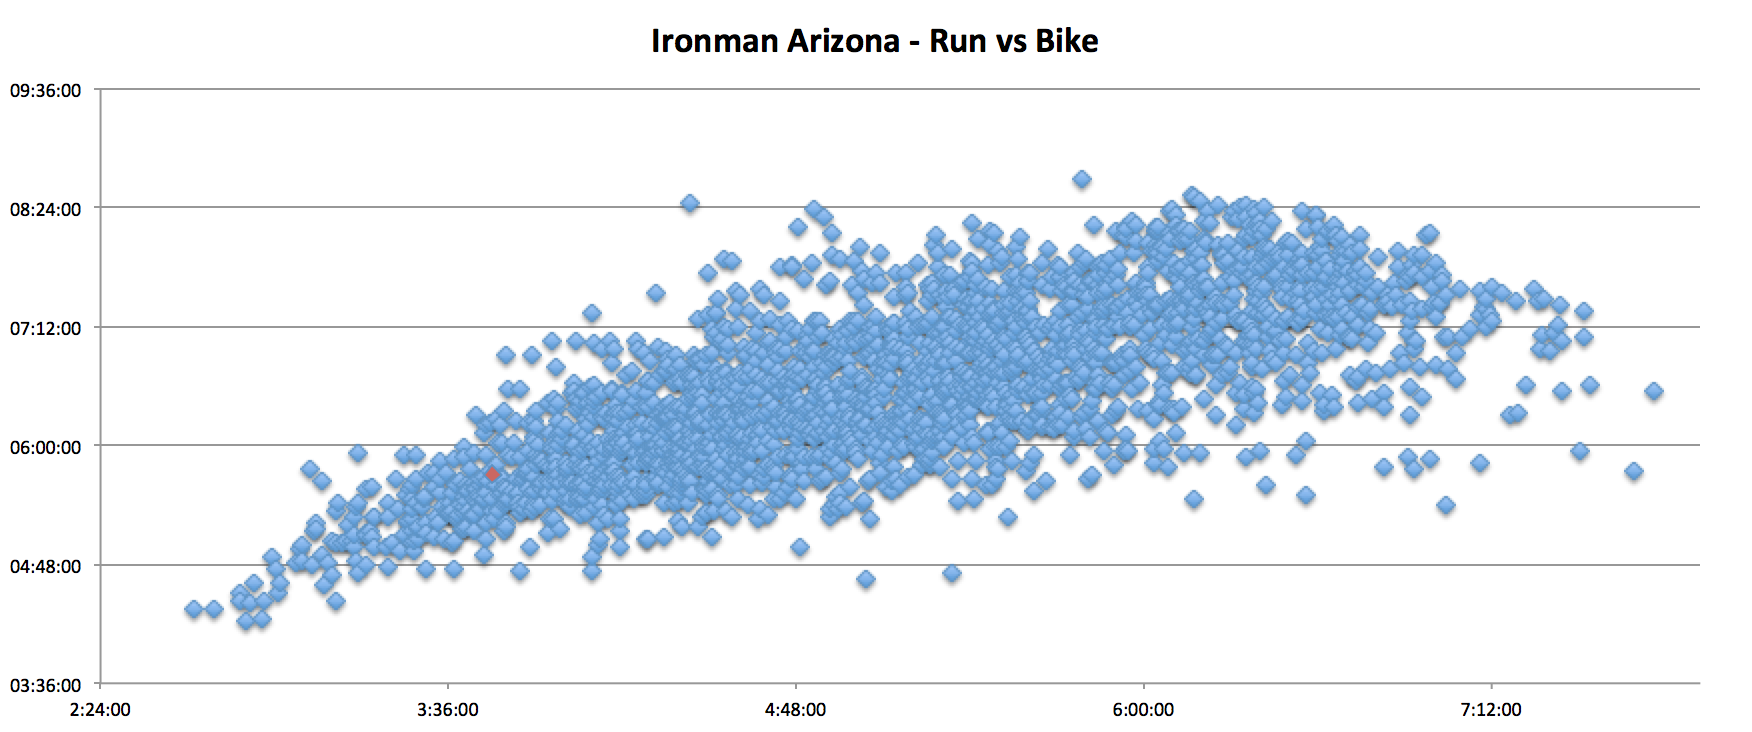 ironman_arizona_run_vs_bike